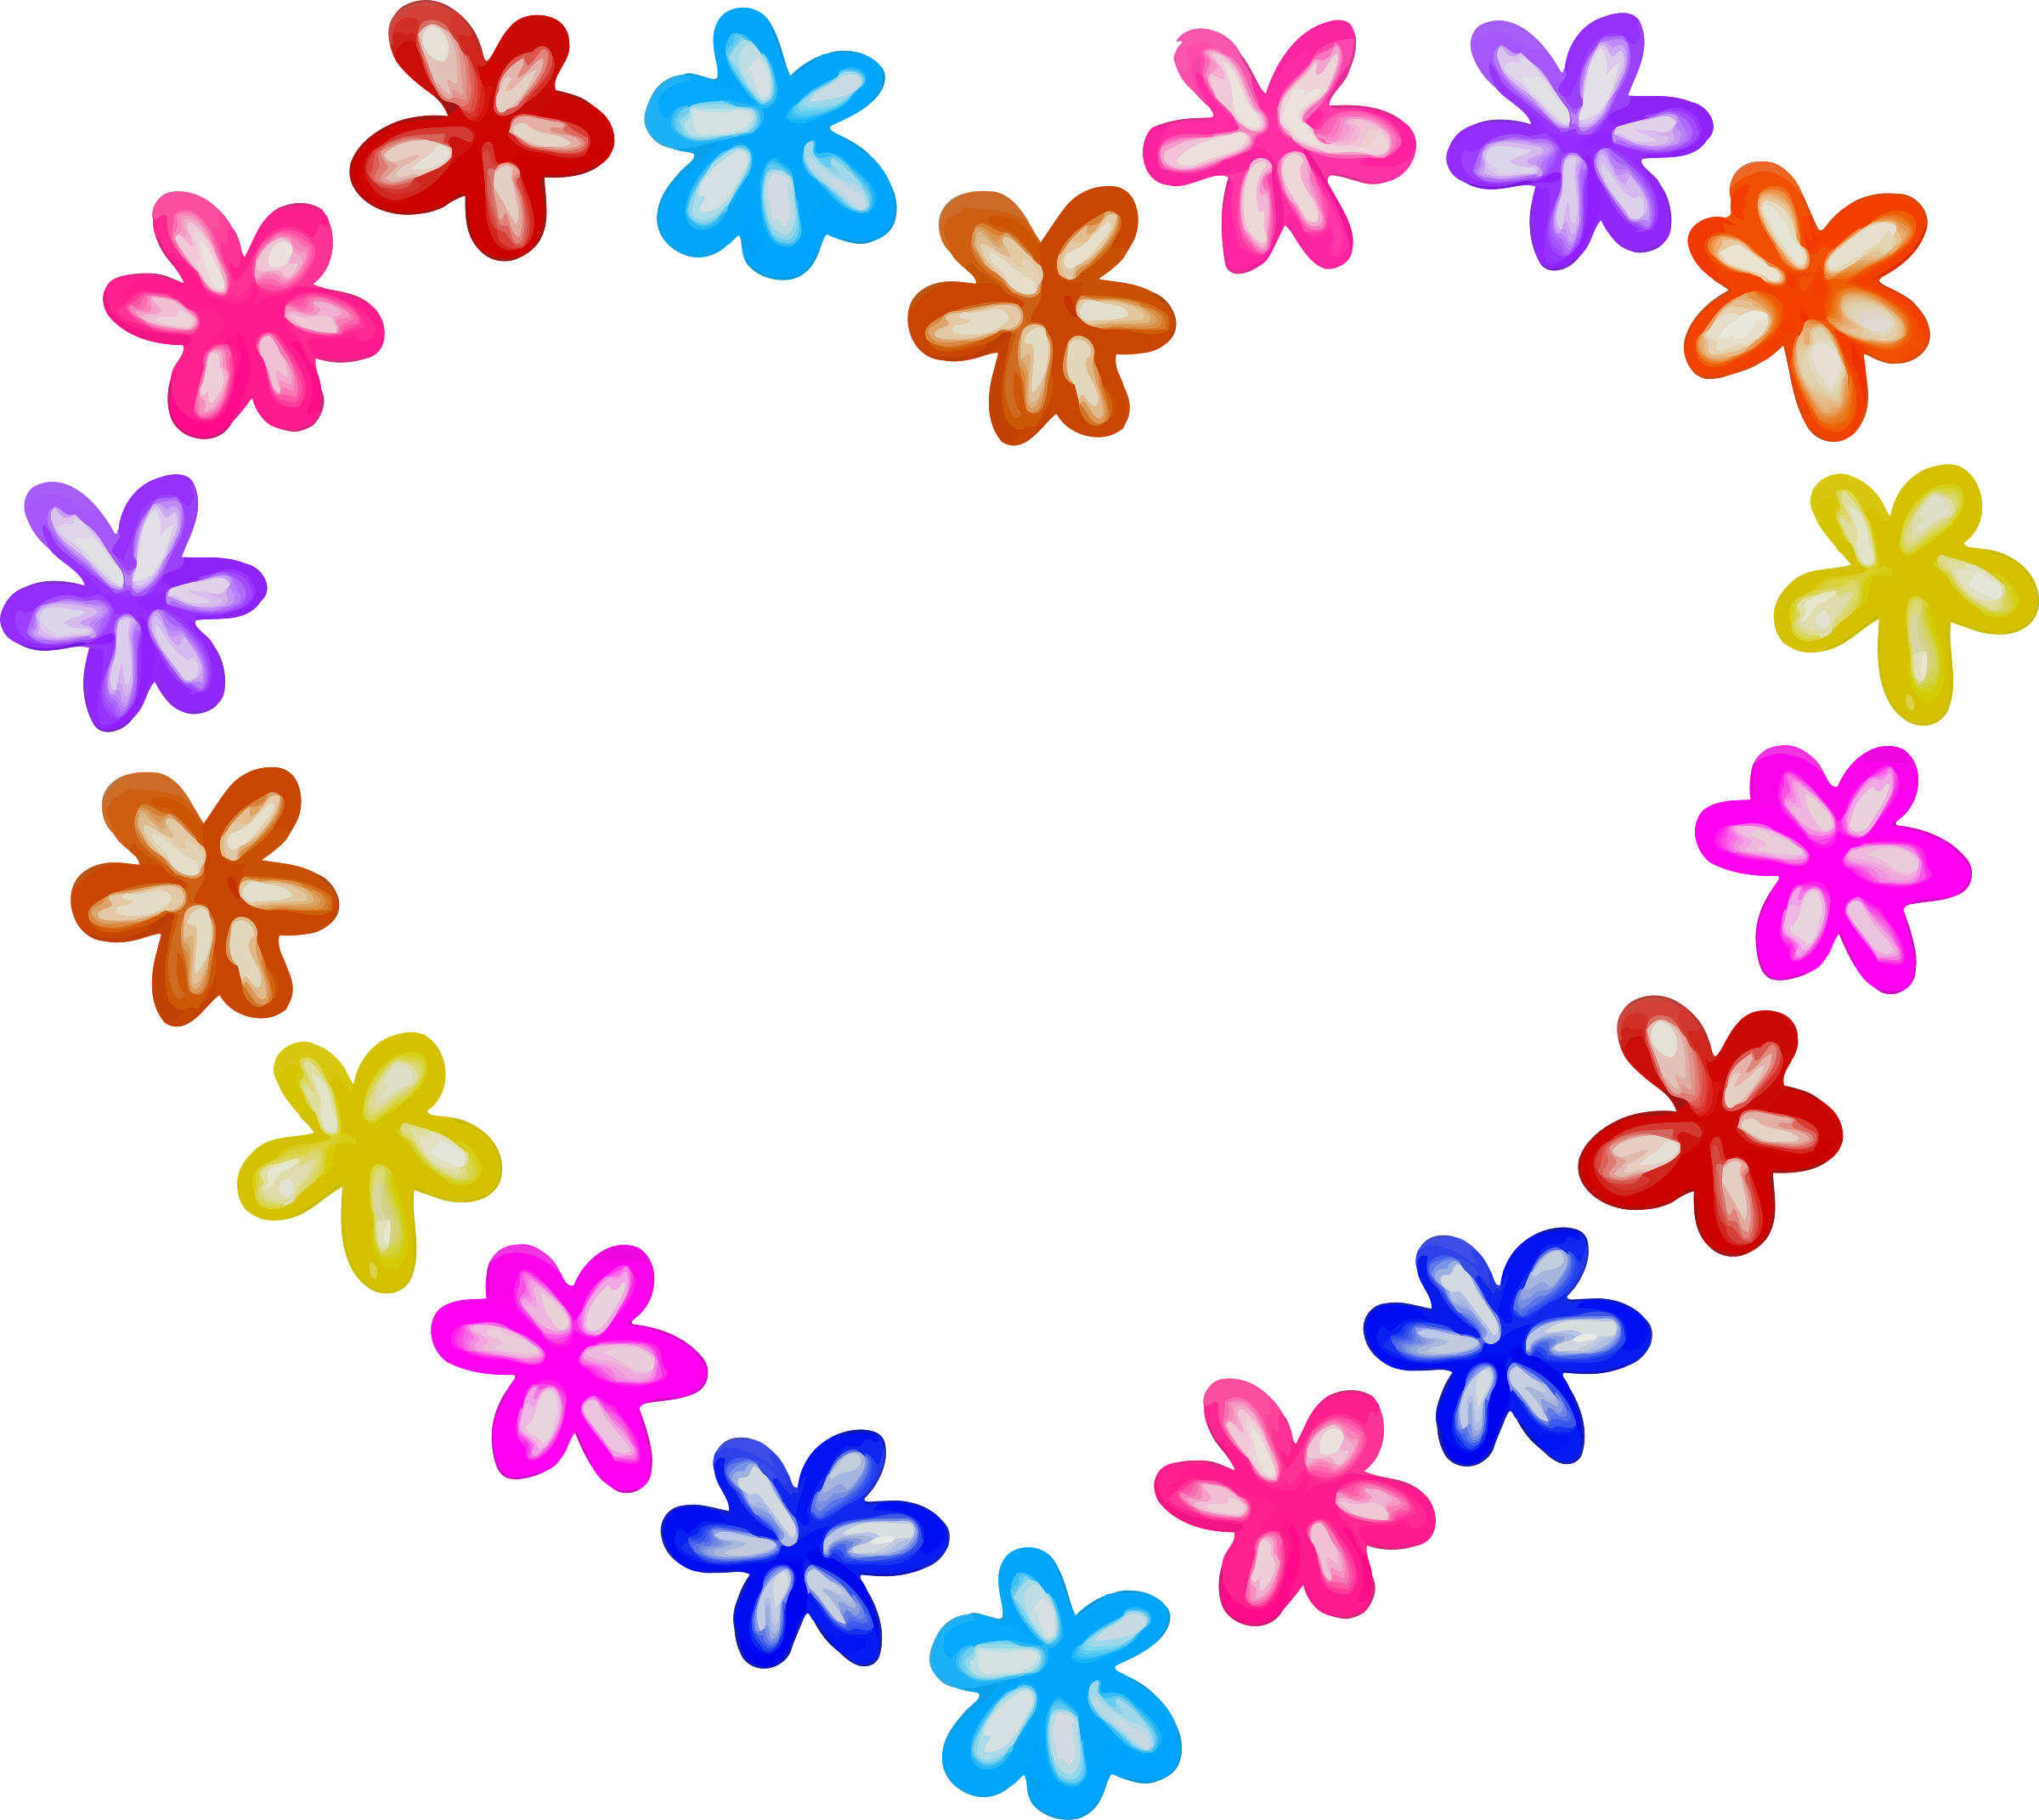 Heart big image png. Hearts clipart flower